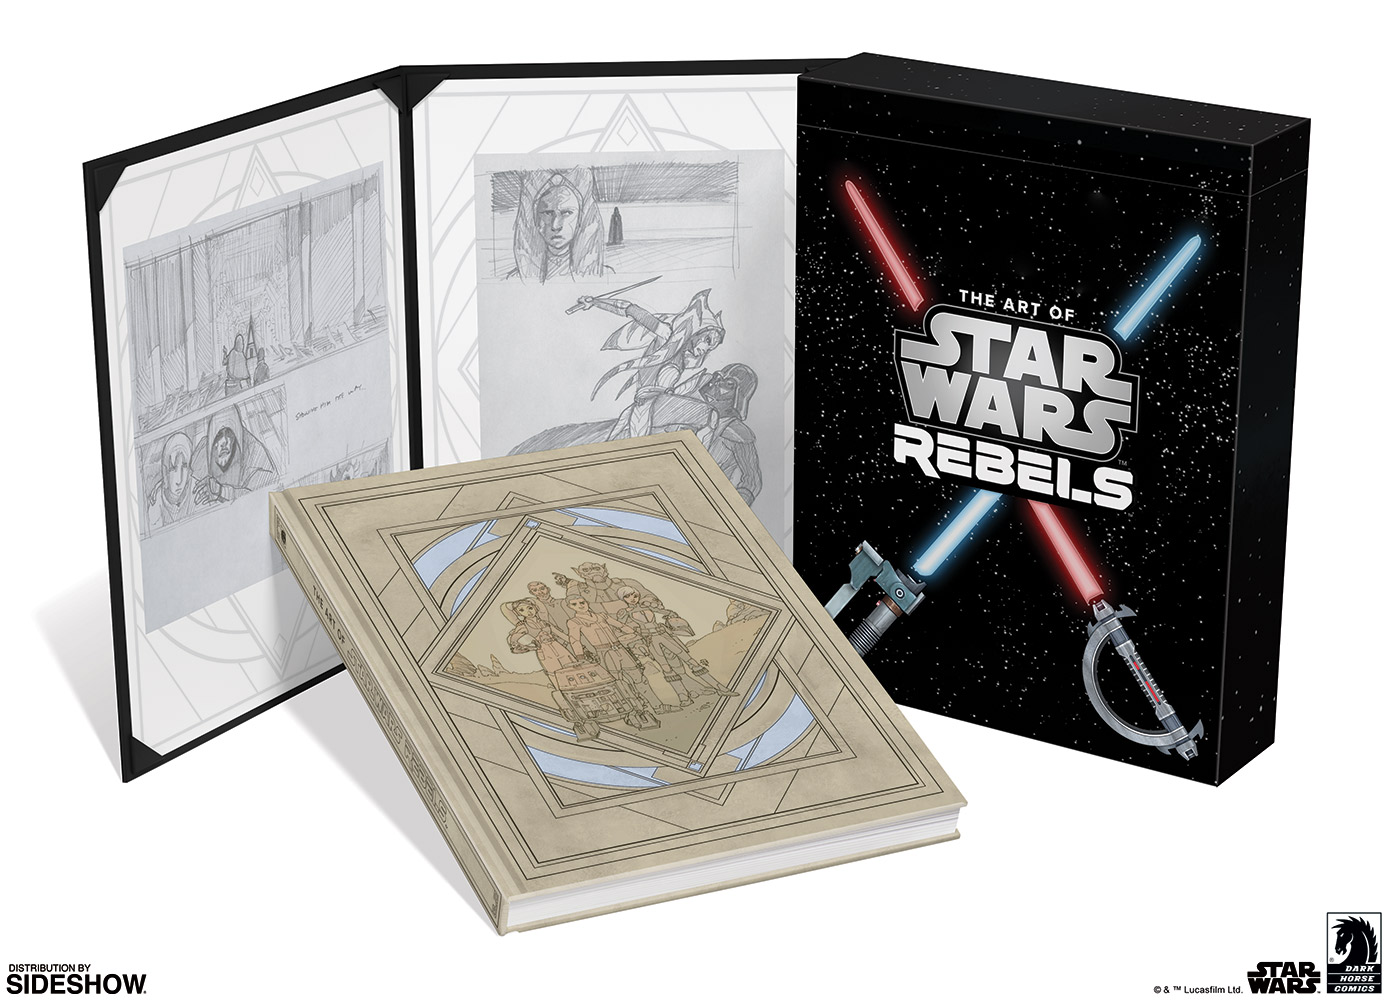 The Art of Star Wars Rebels LE Book 2